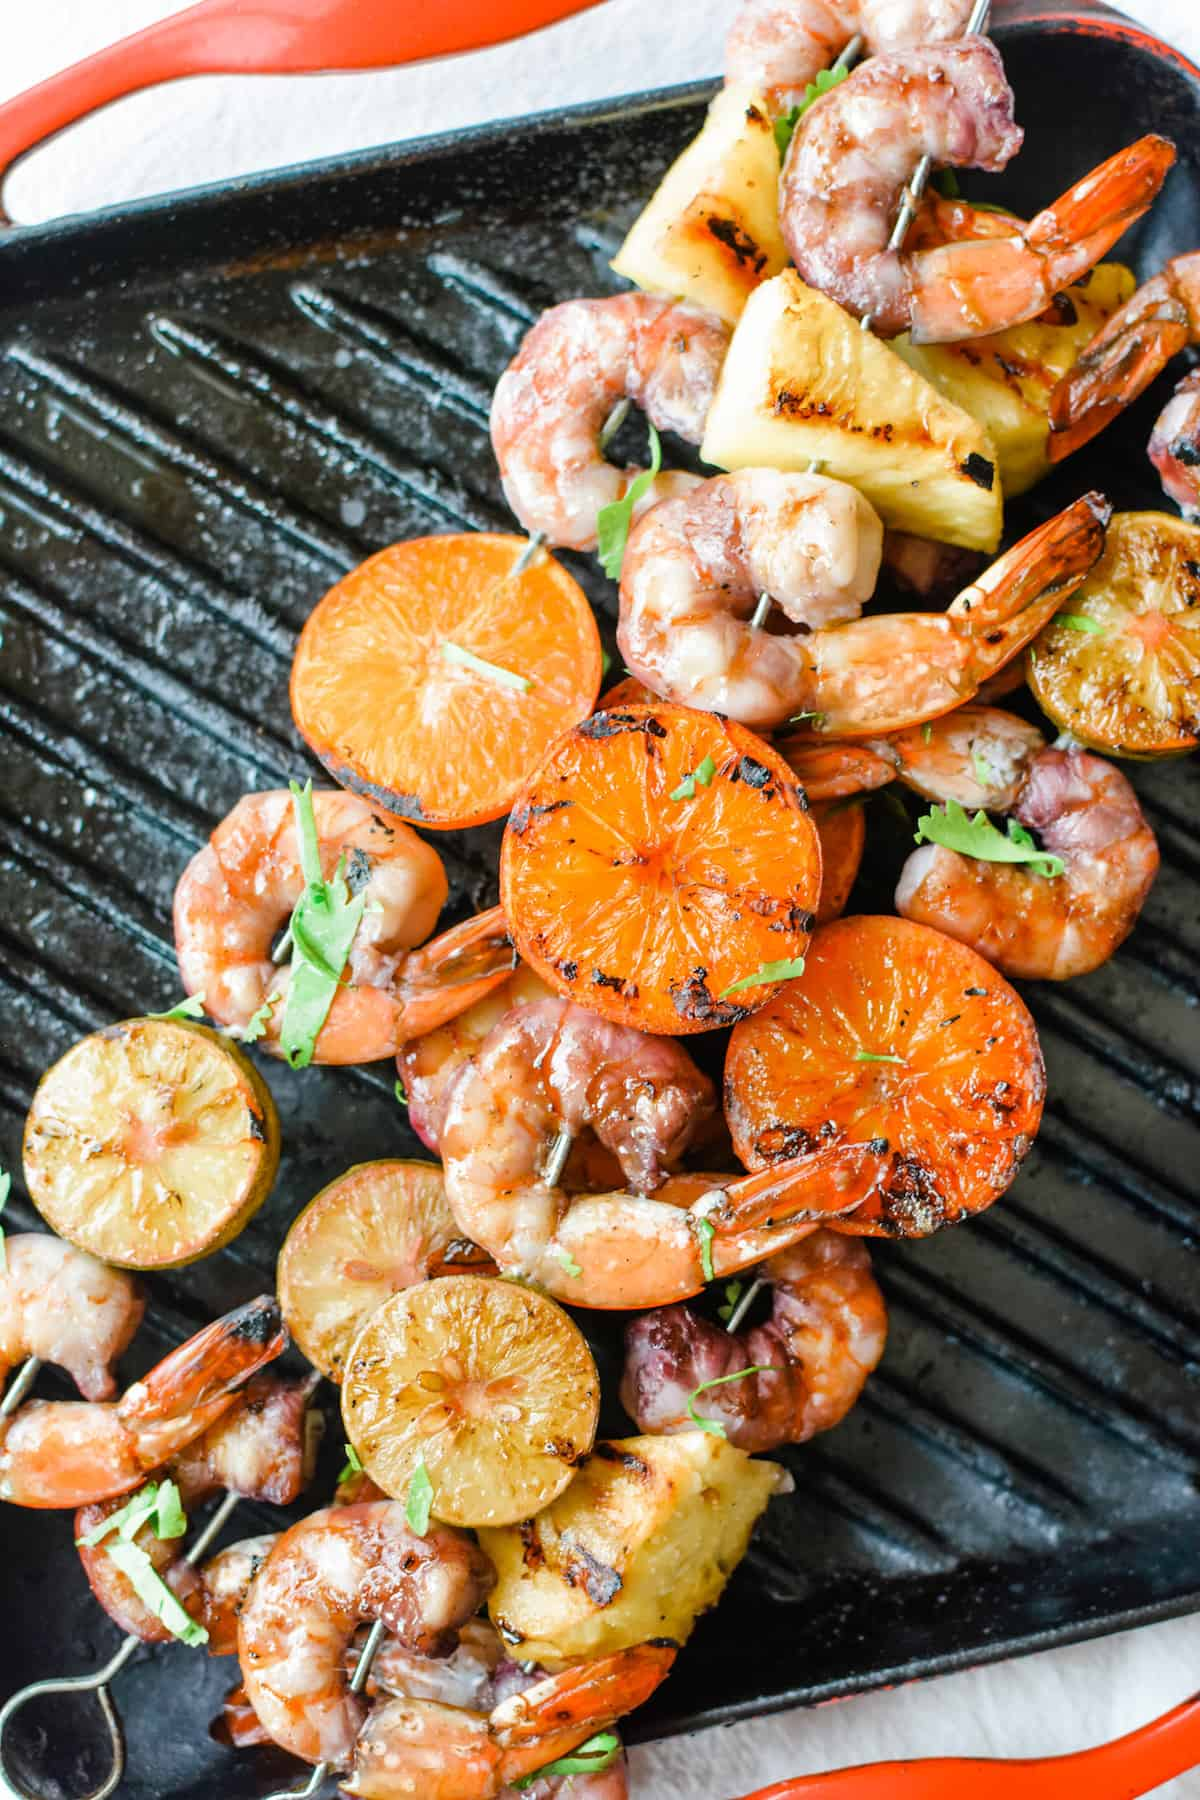 Overhead image of grilled shrimp, tangerine halves, key limes, and pineapple on metal skewers sitting on a grill pan with red edges.